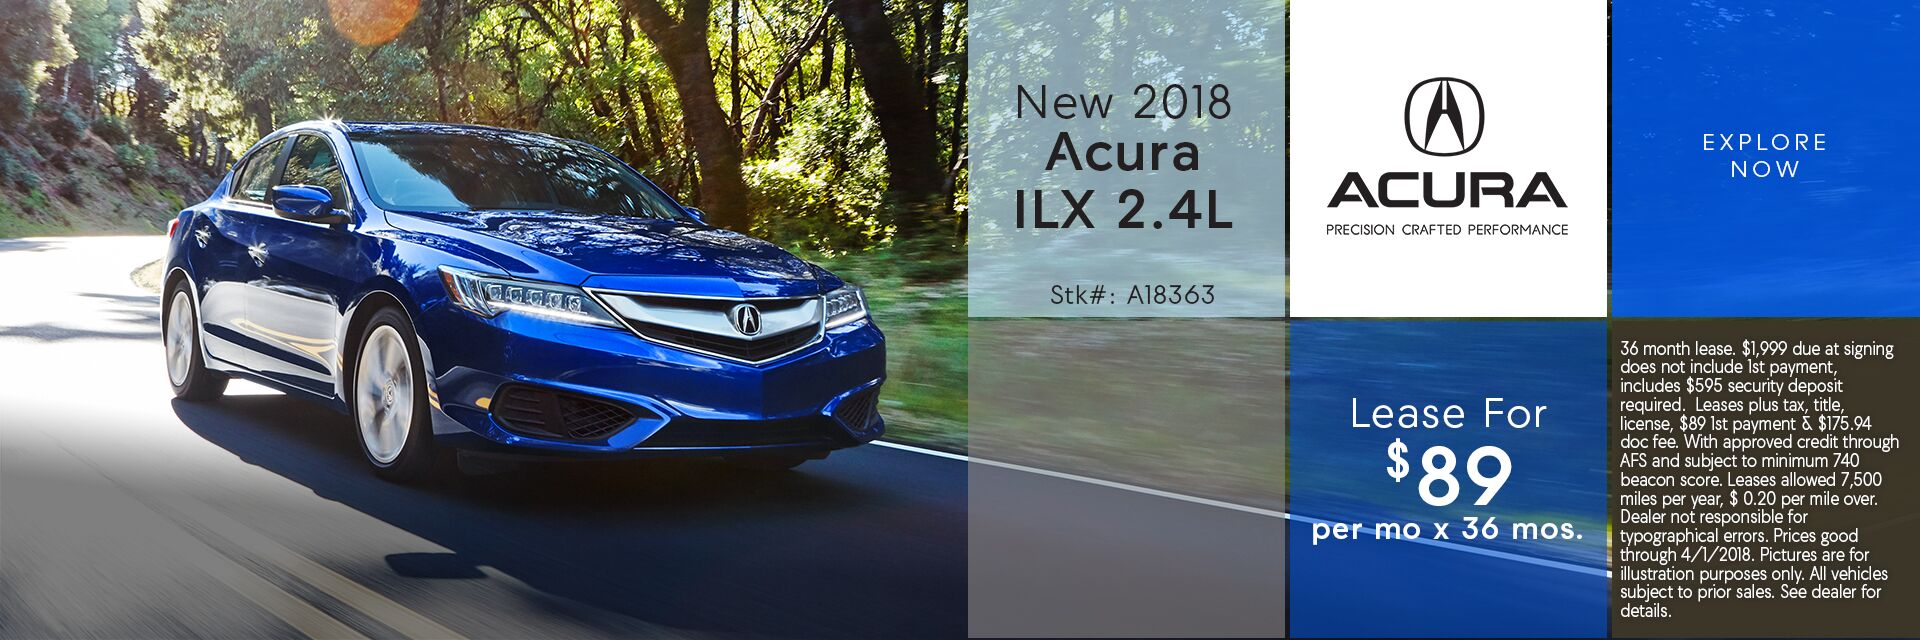 Lease the New 2018 Acura ILX